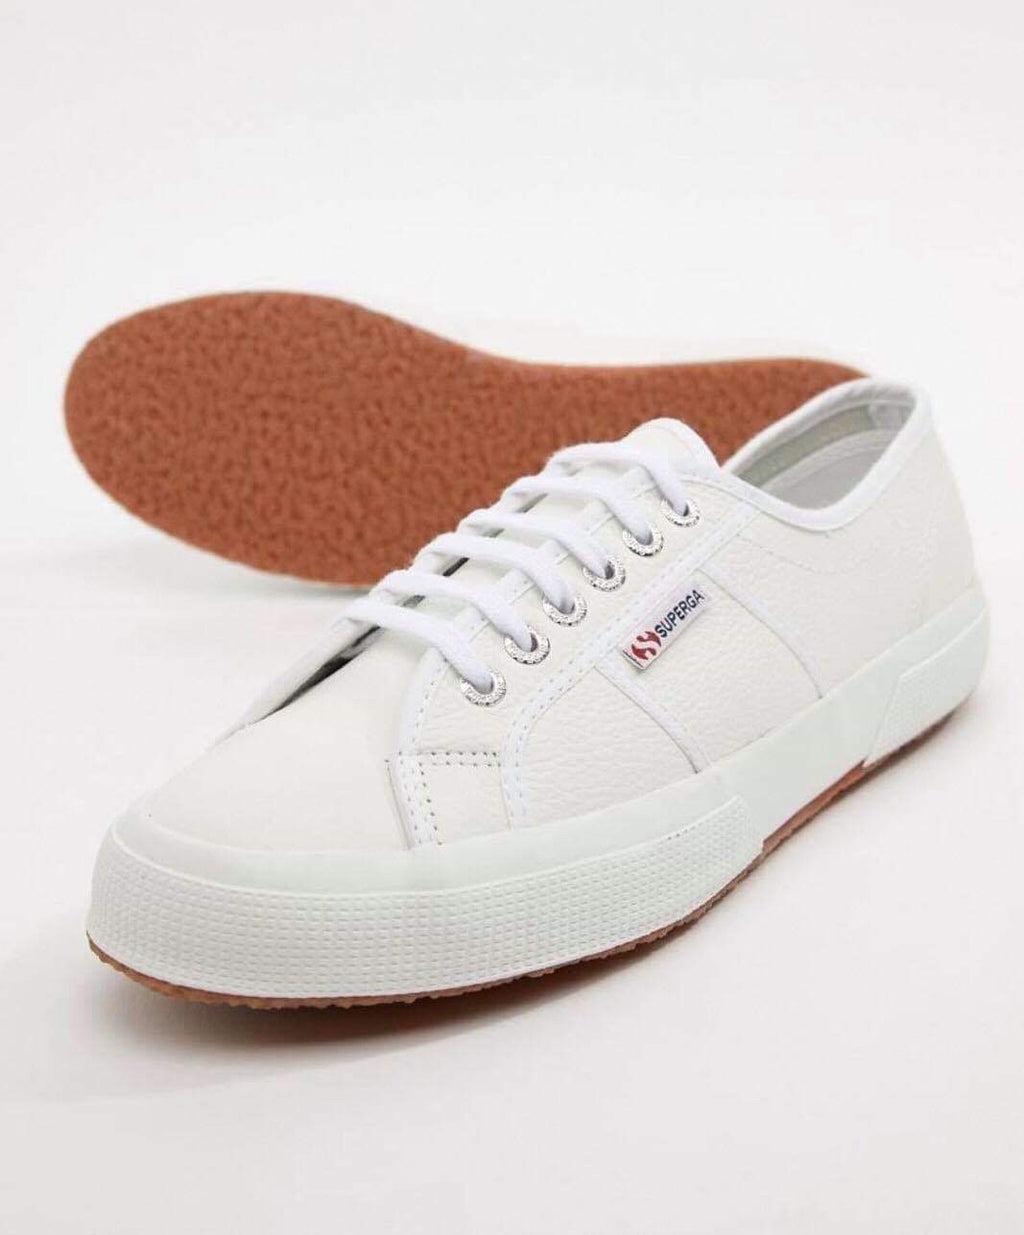 Superga Cotu 2750 - Leather